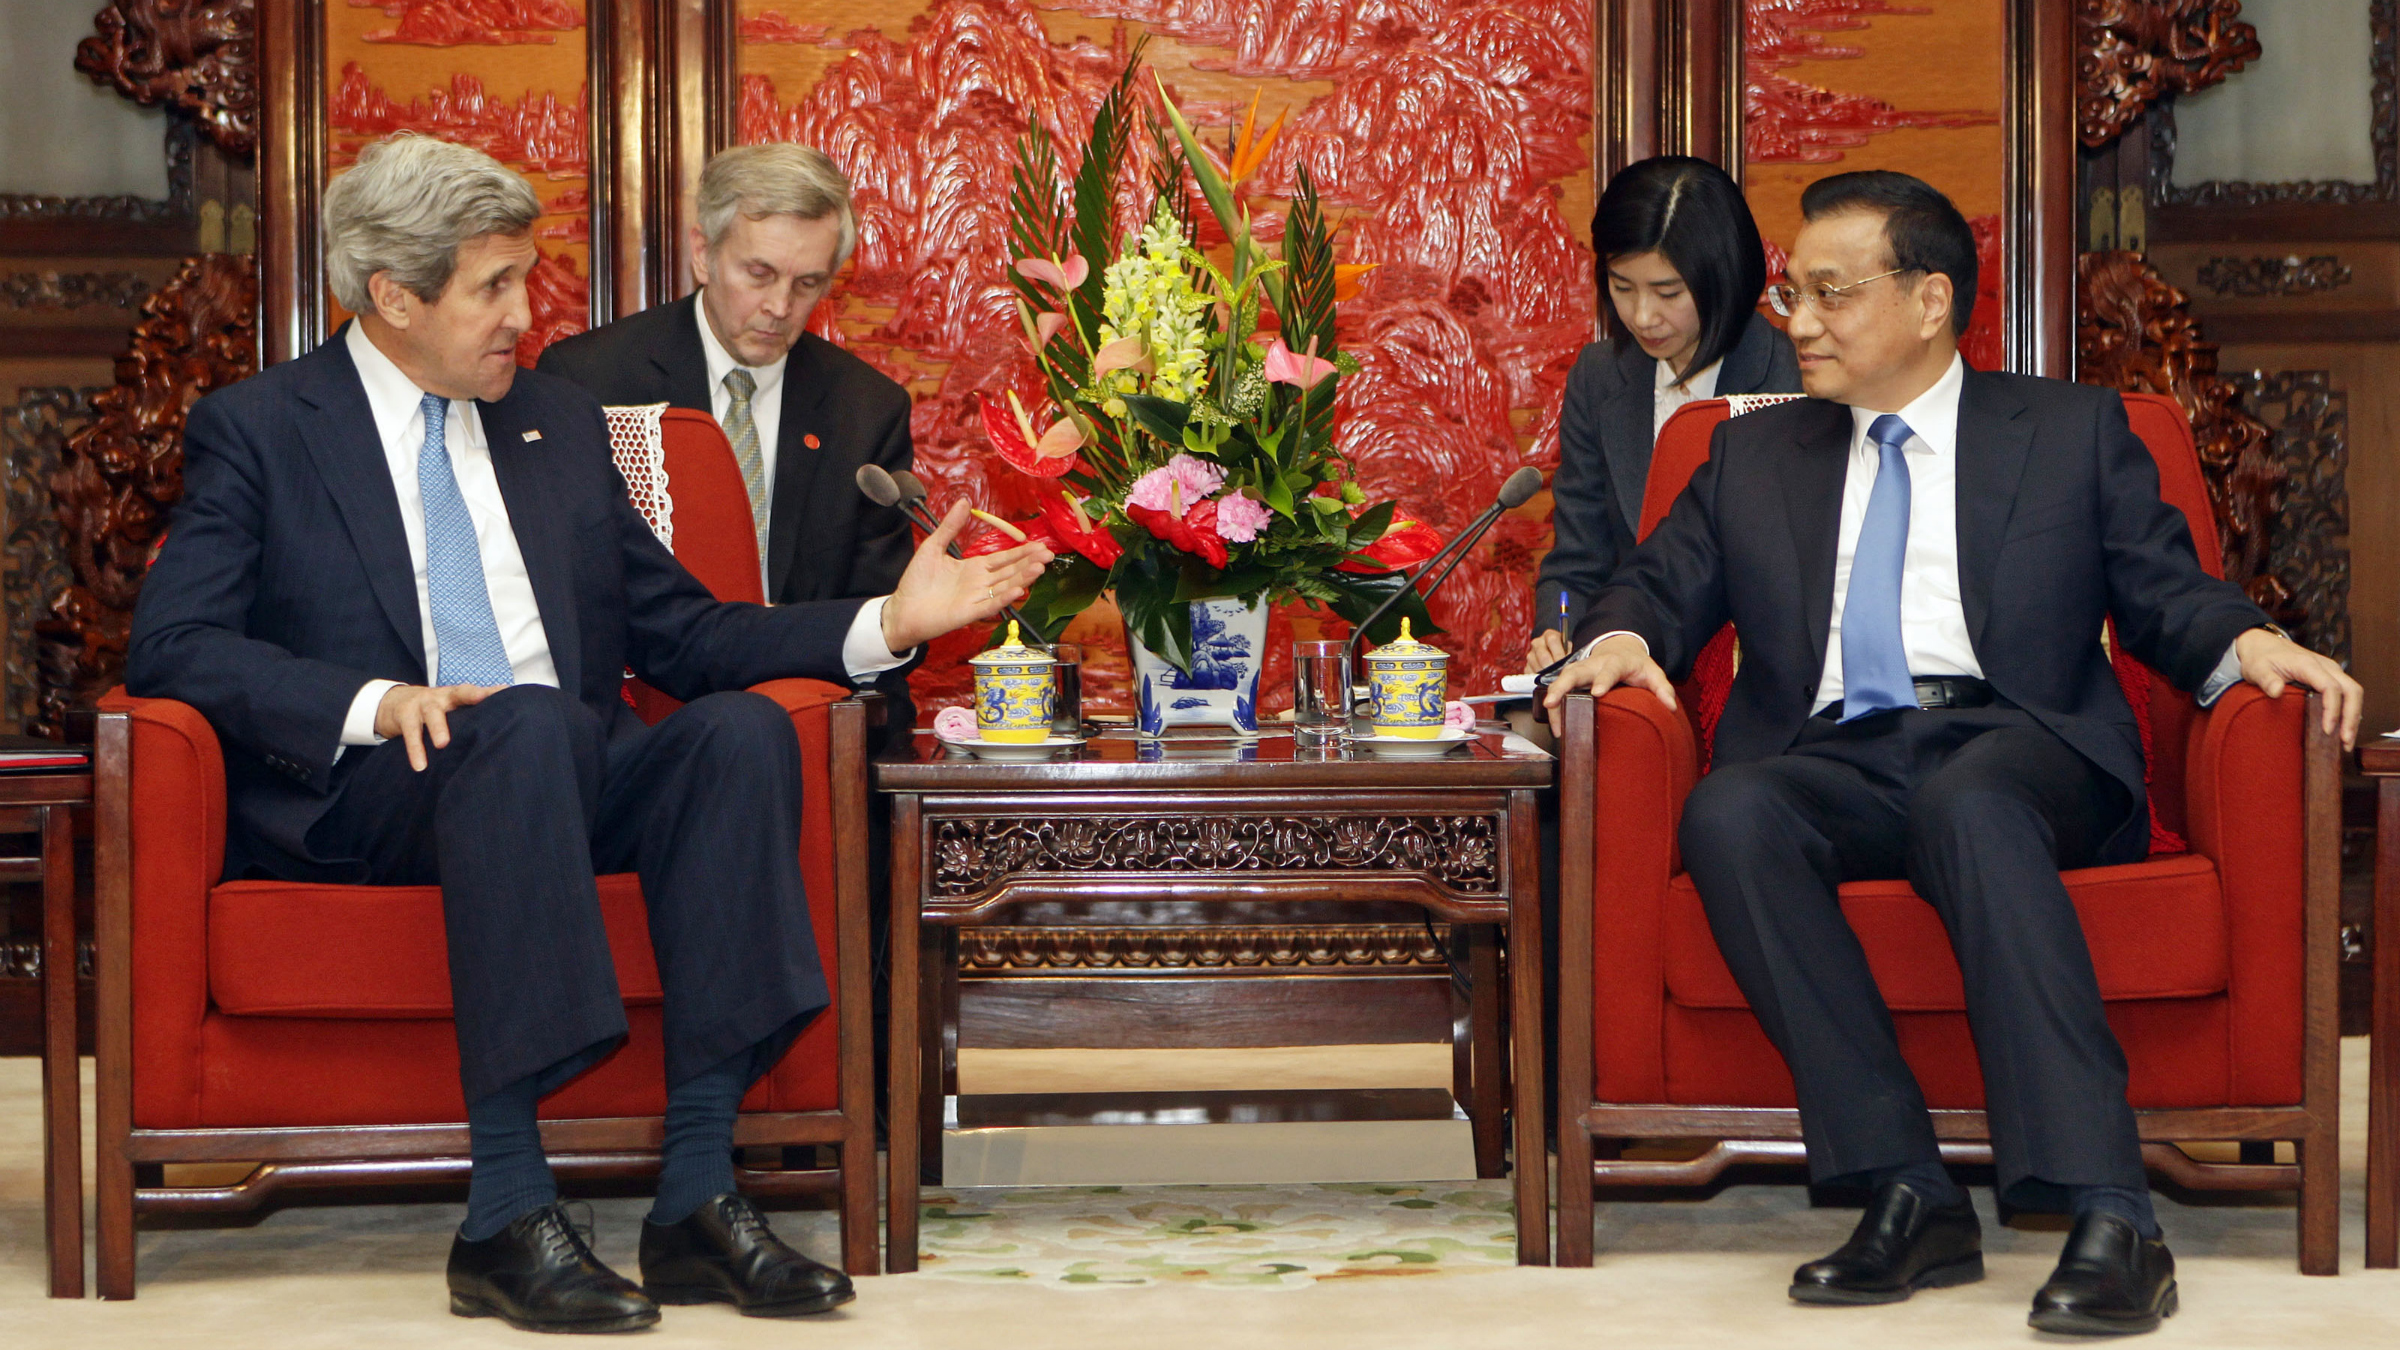 John Kerry visits China